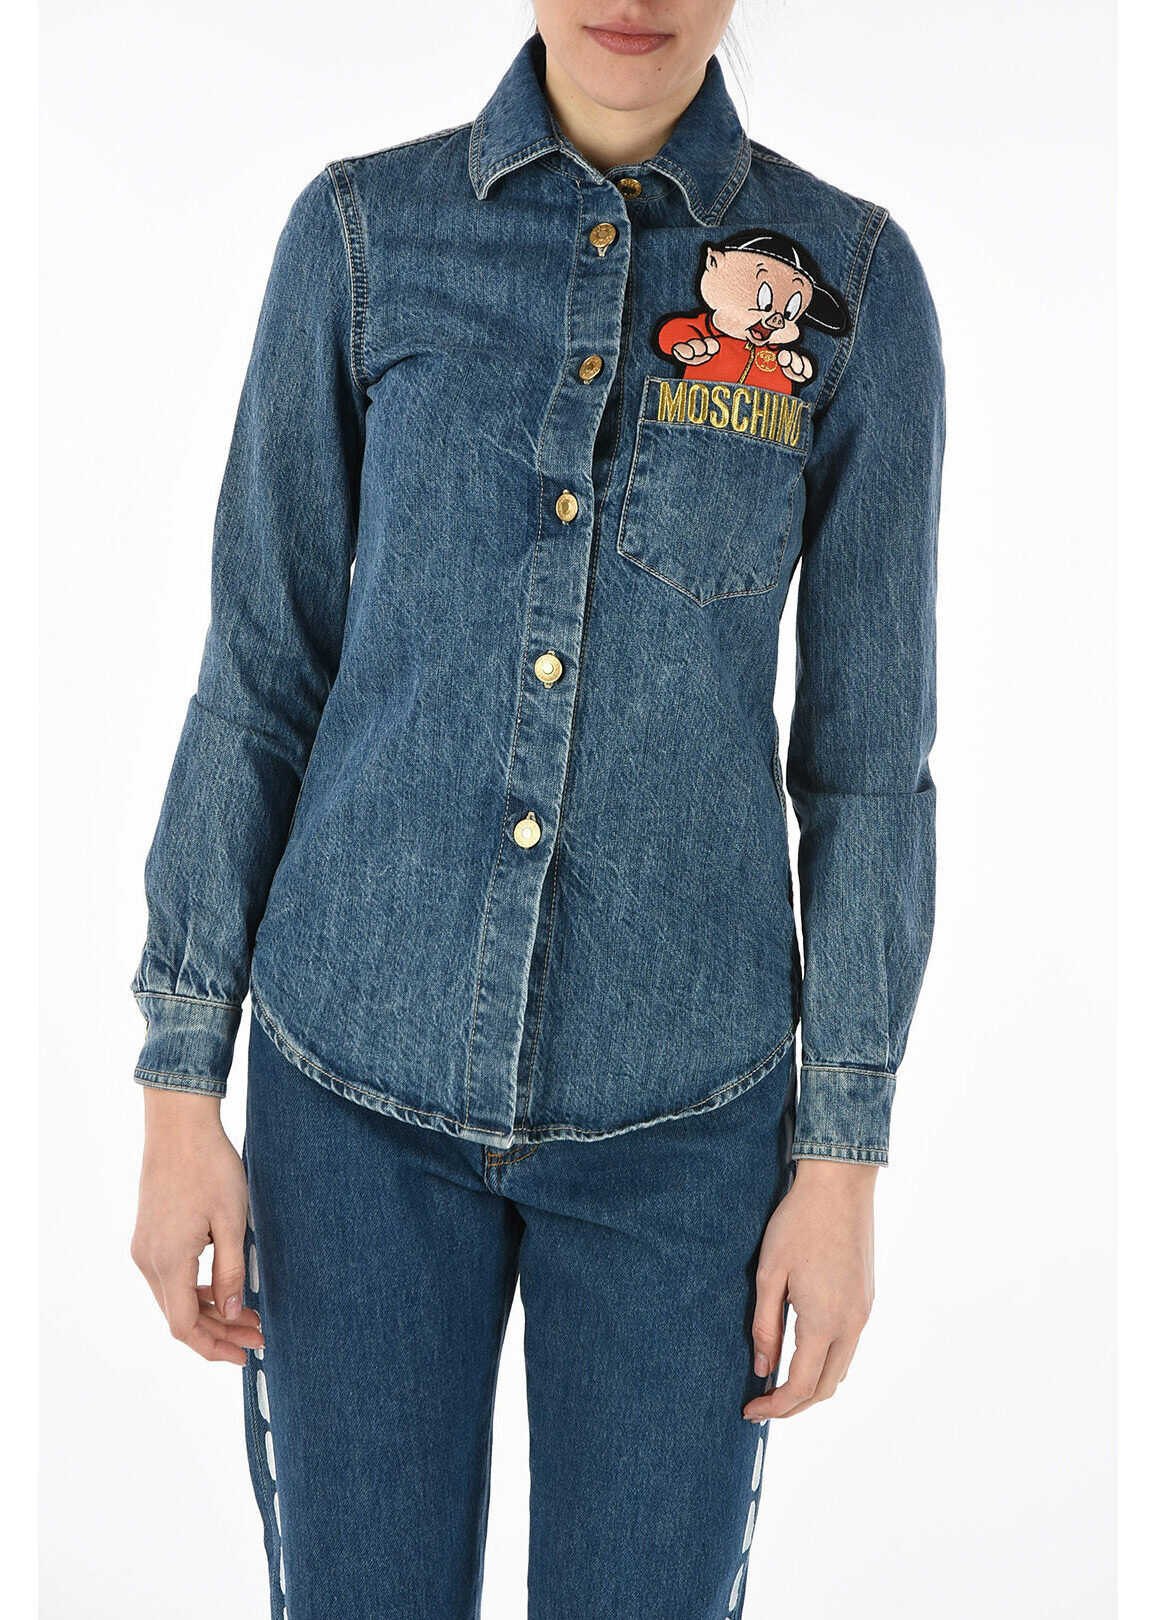 Moschino COUTURE! LOONEY TUNES denim jacket BLUE